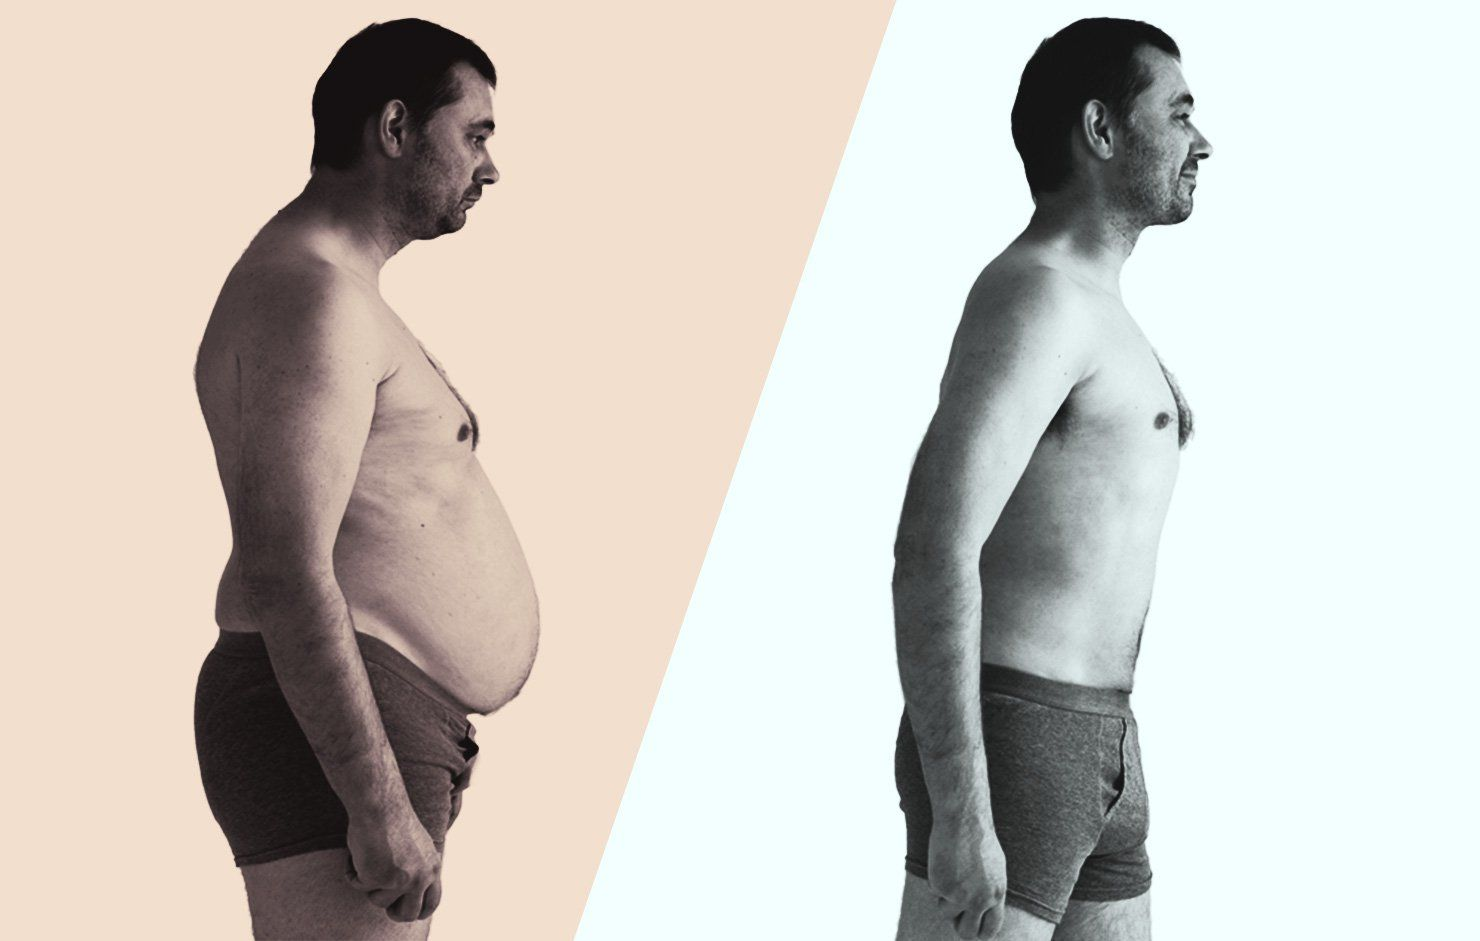 Weight loss tips for men in their 30s